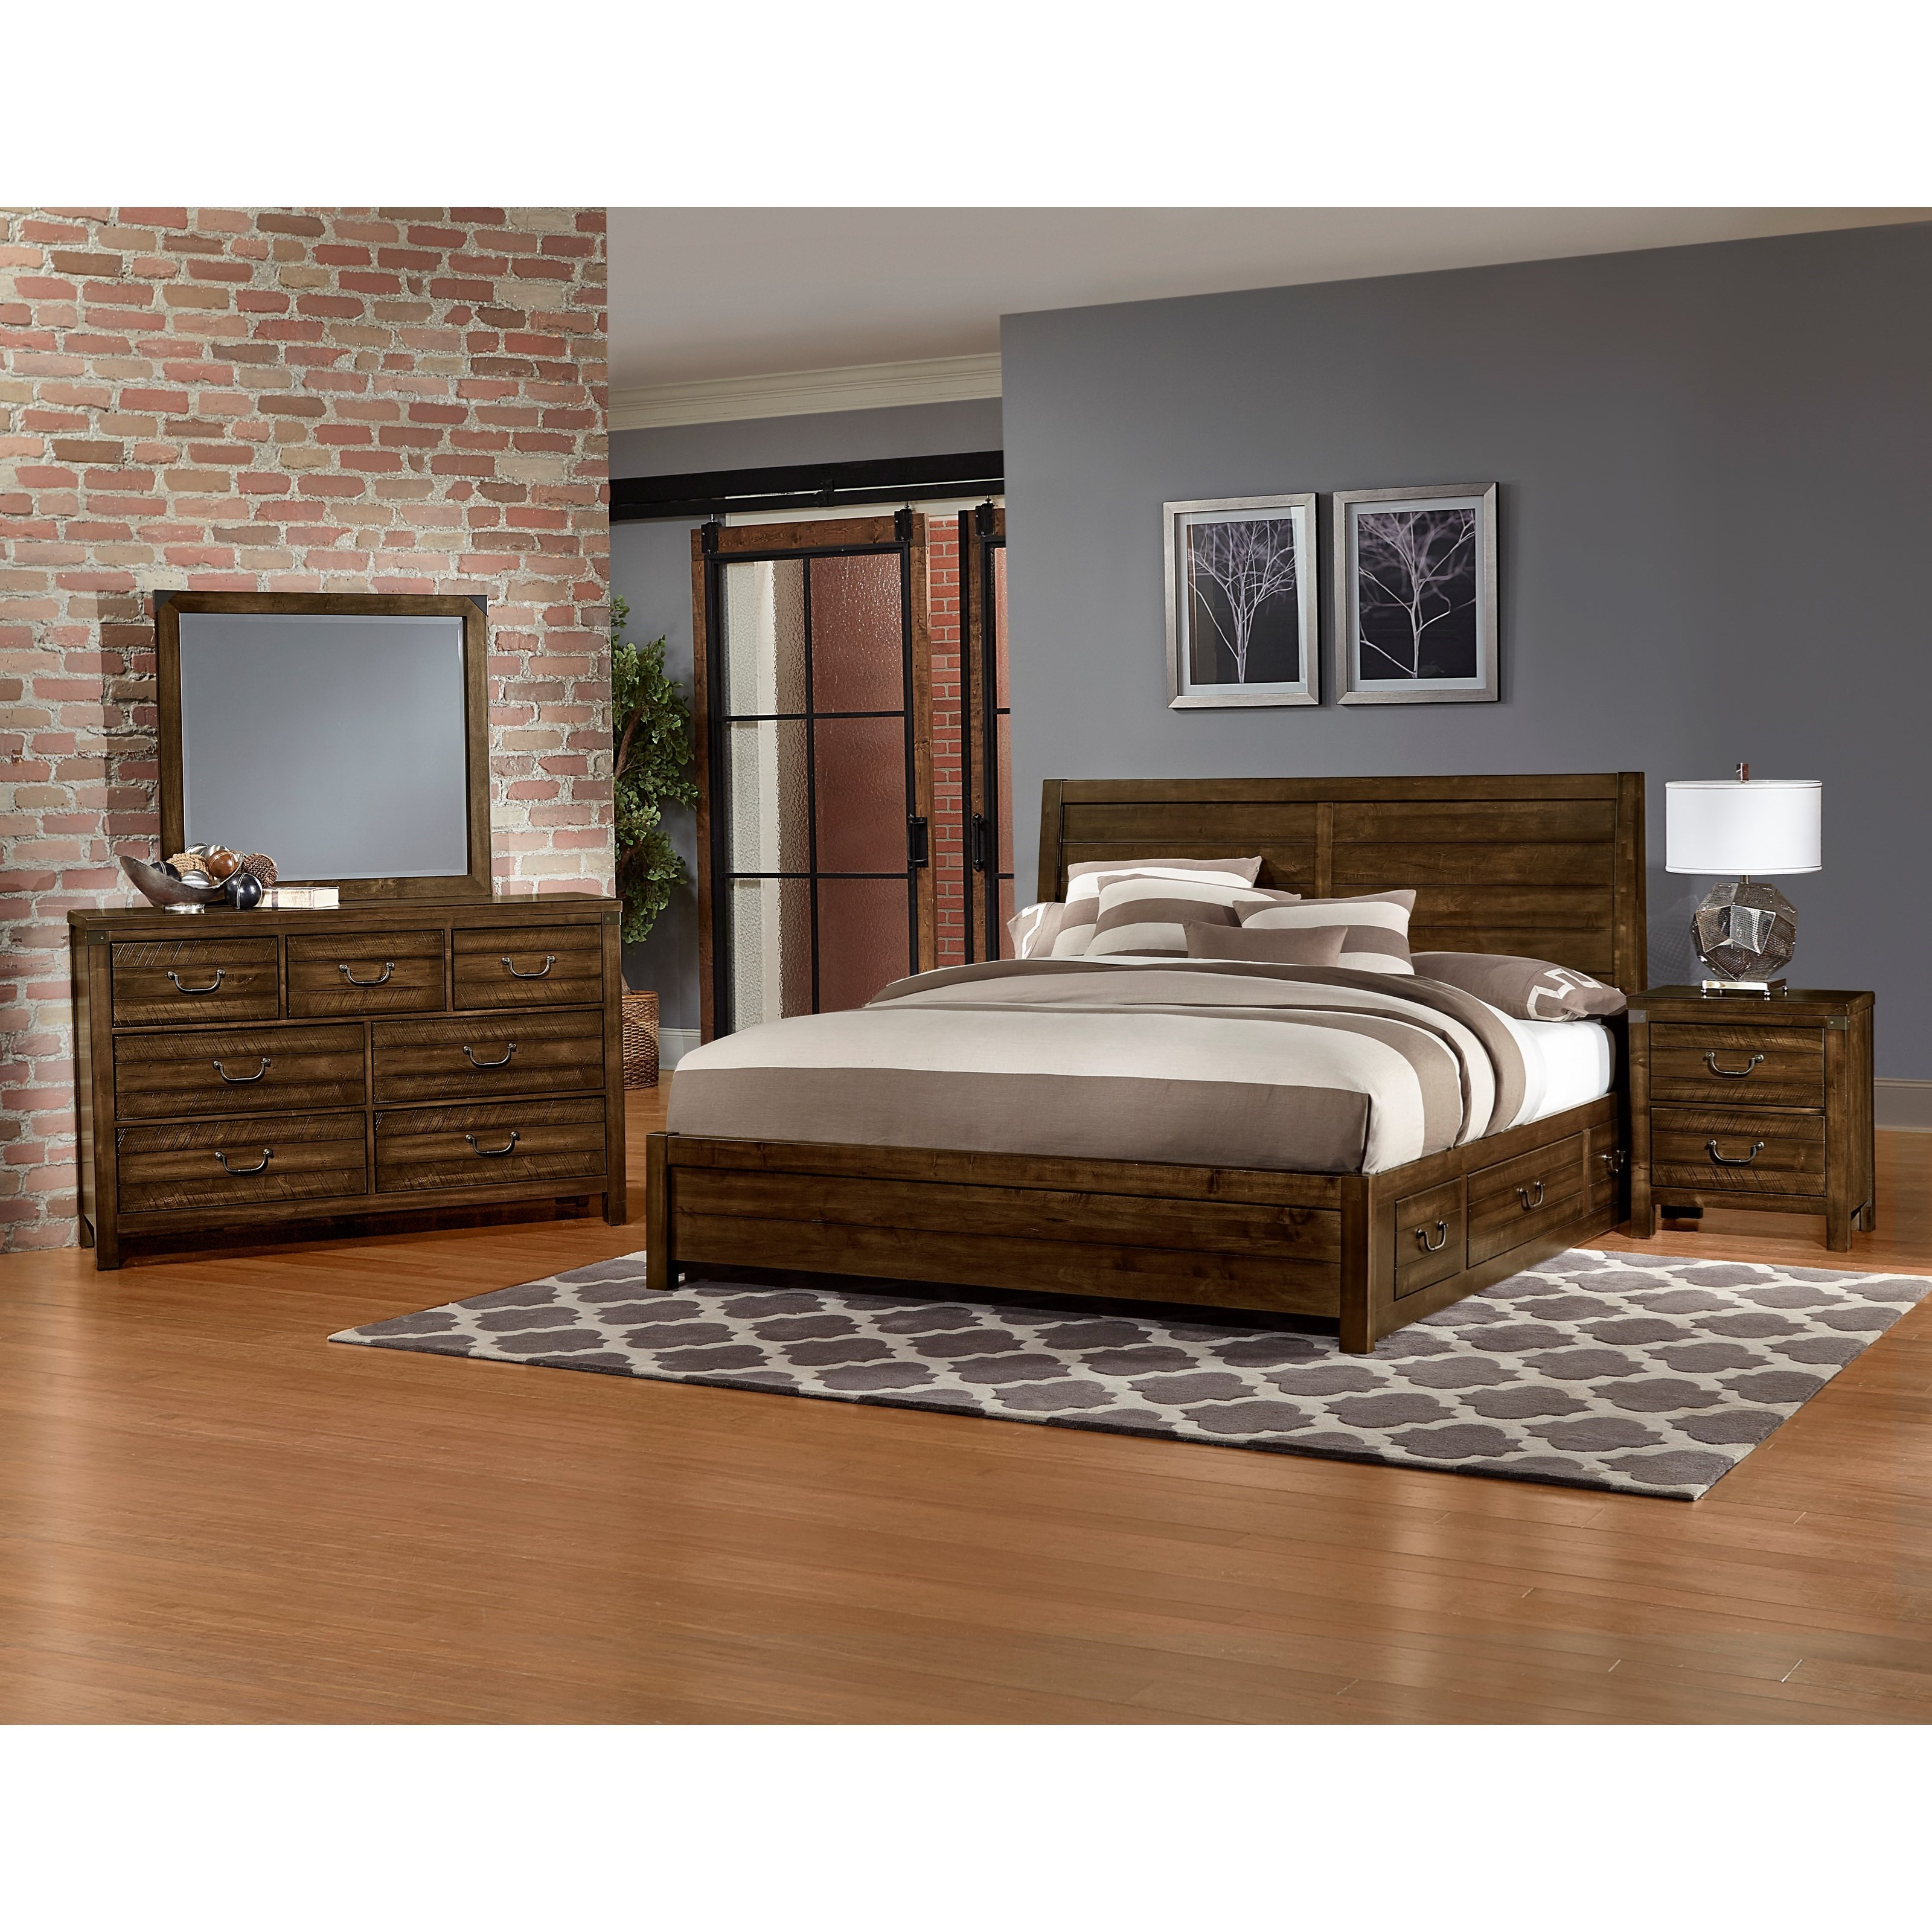 Sedgwick King Bedroom Group by Artisan & Post at Jacksonville Furniture Mart